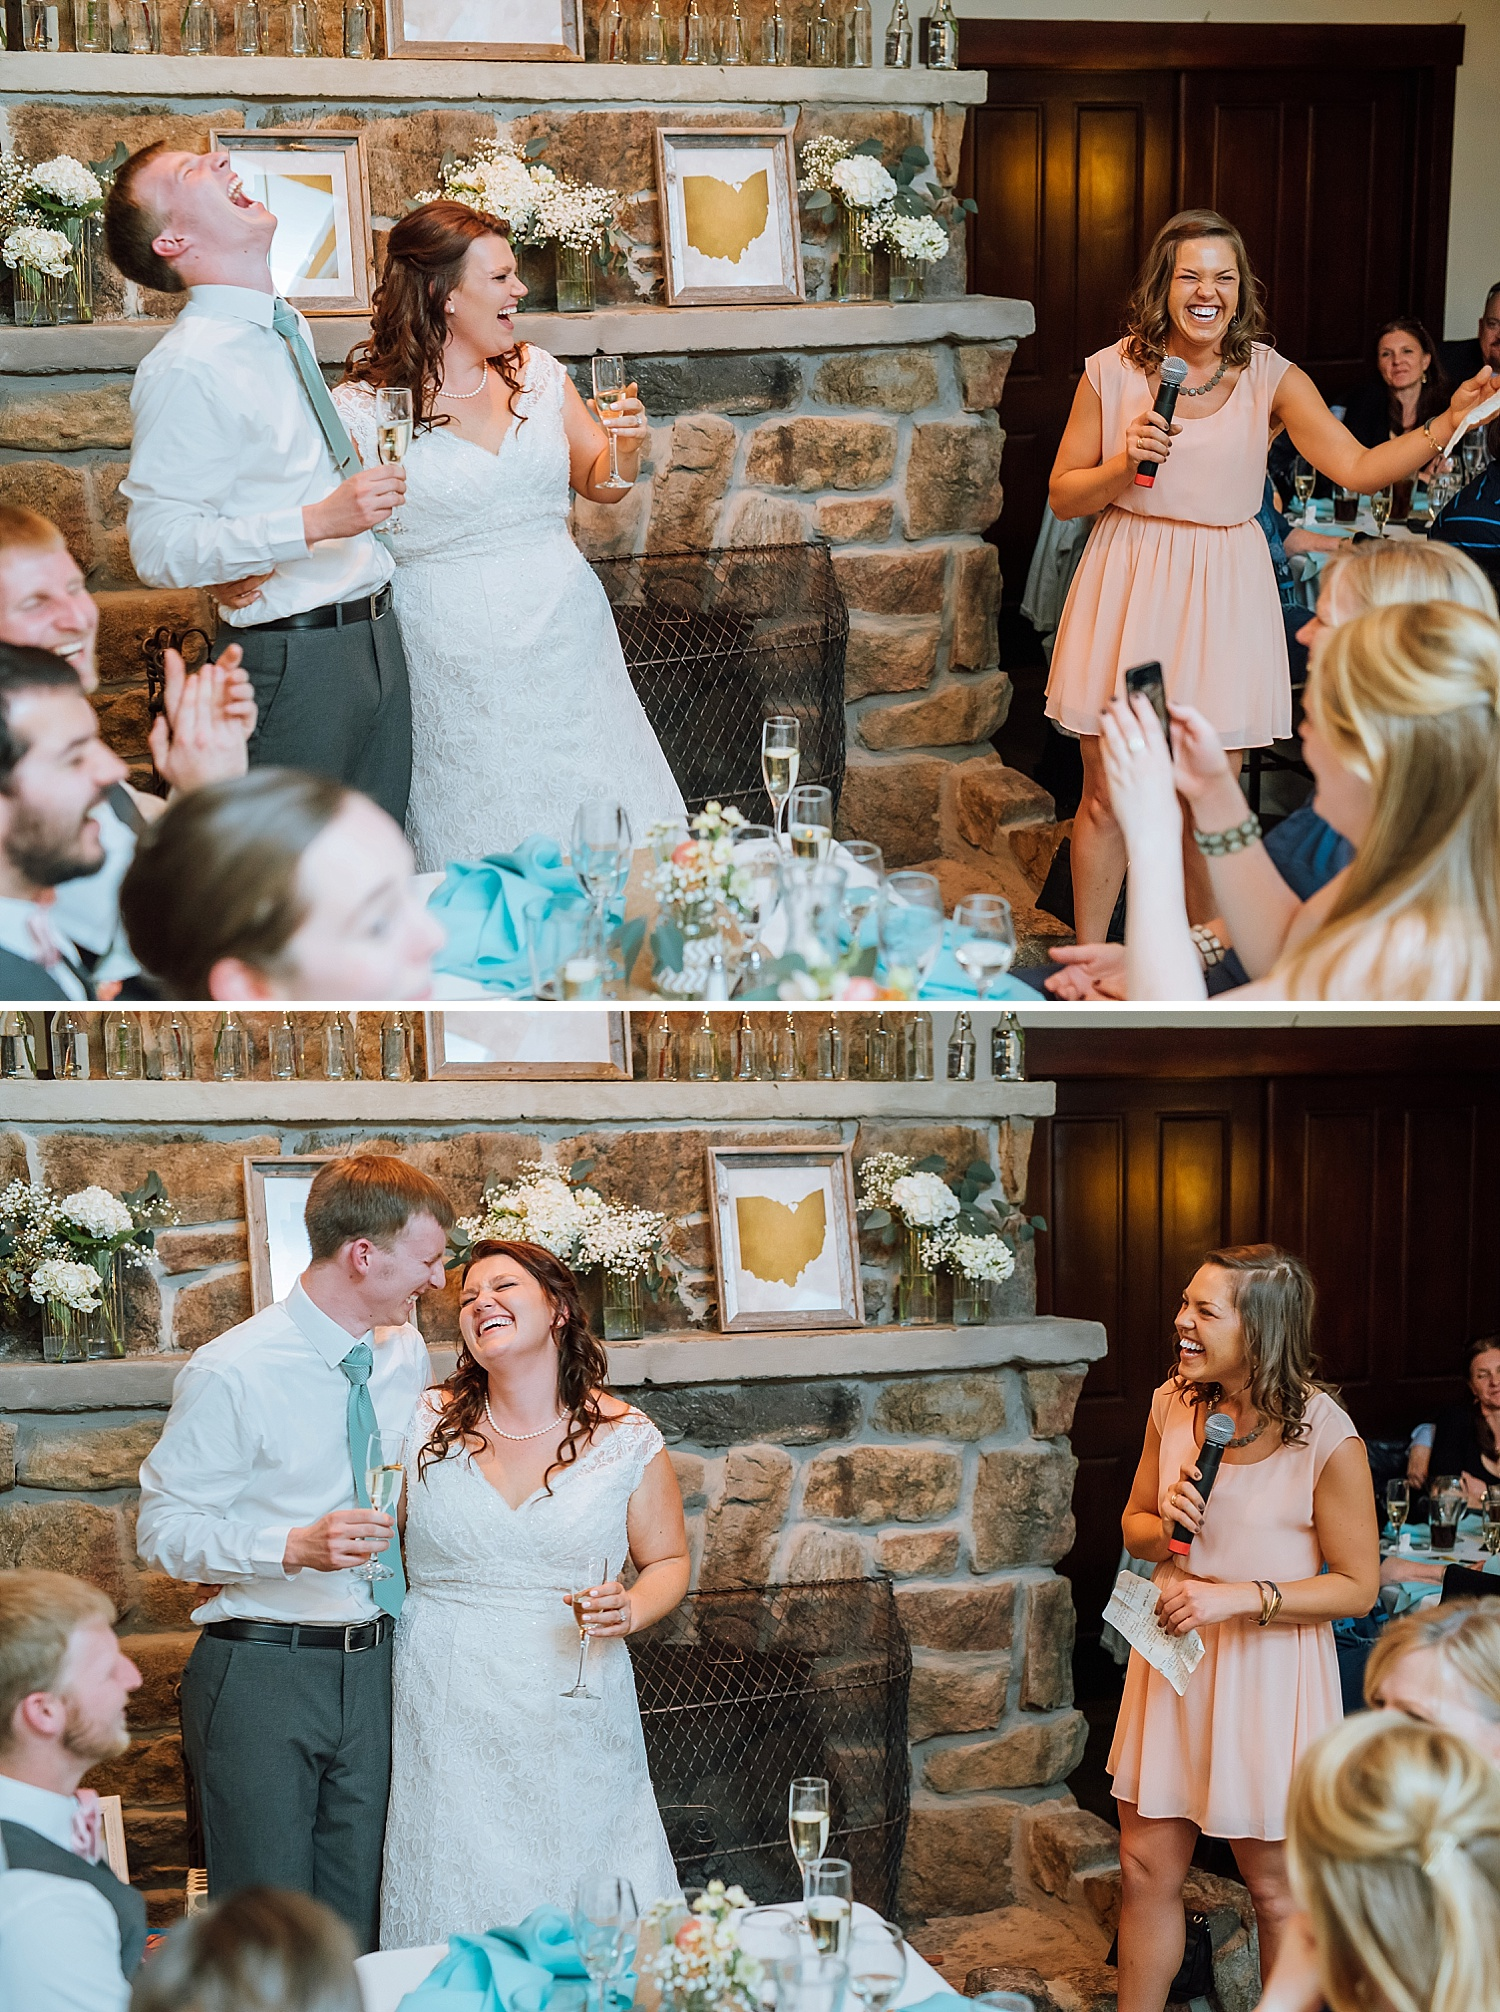 This blush, coral, light pink and teal, aqua, tiffany blue color scheme is perfect for this mountain themed wedding reception up in Estes Park, Colorado. I love the couple's reactions to the maid of honor's toast! Too cute!Photo by Maddie Mae Photography